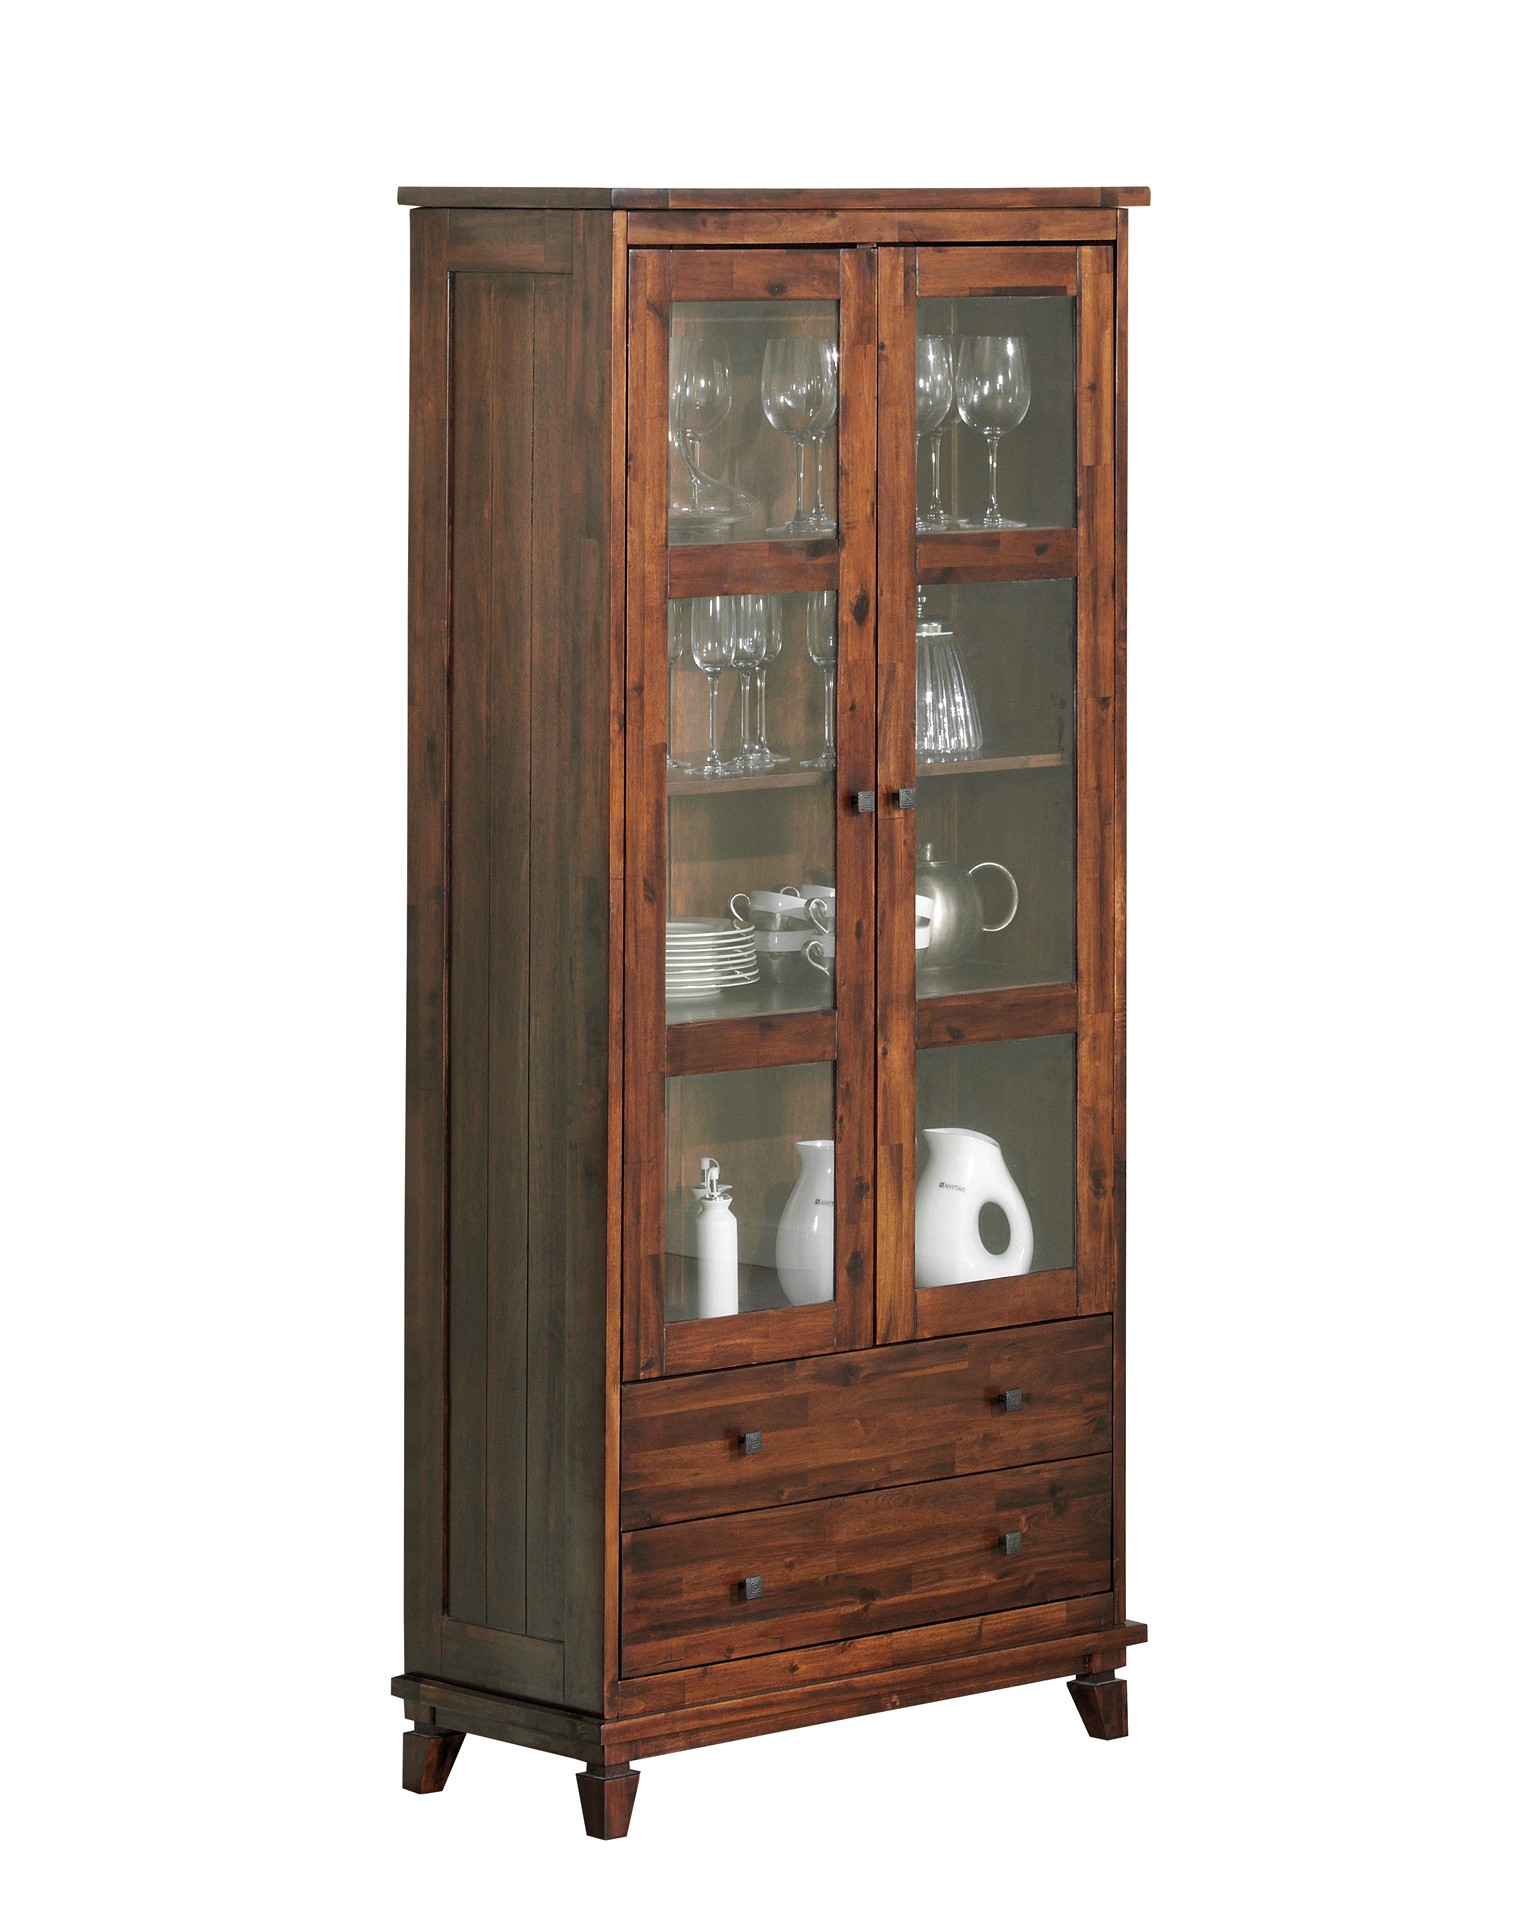 12 sparen vitrine panama nur 349 95 cherry m bel d nisches bettenlager. Black Bedroom Furniture Sets. Home Design Ideas